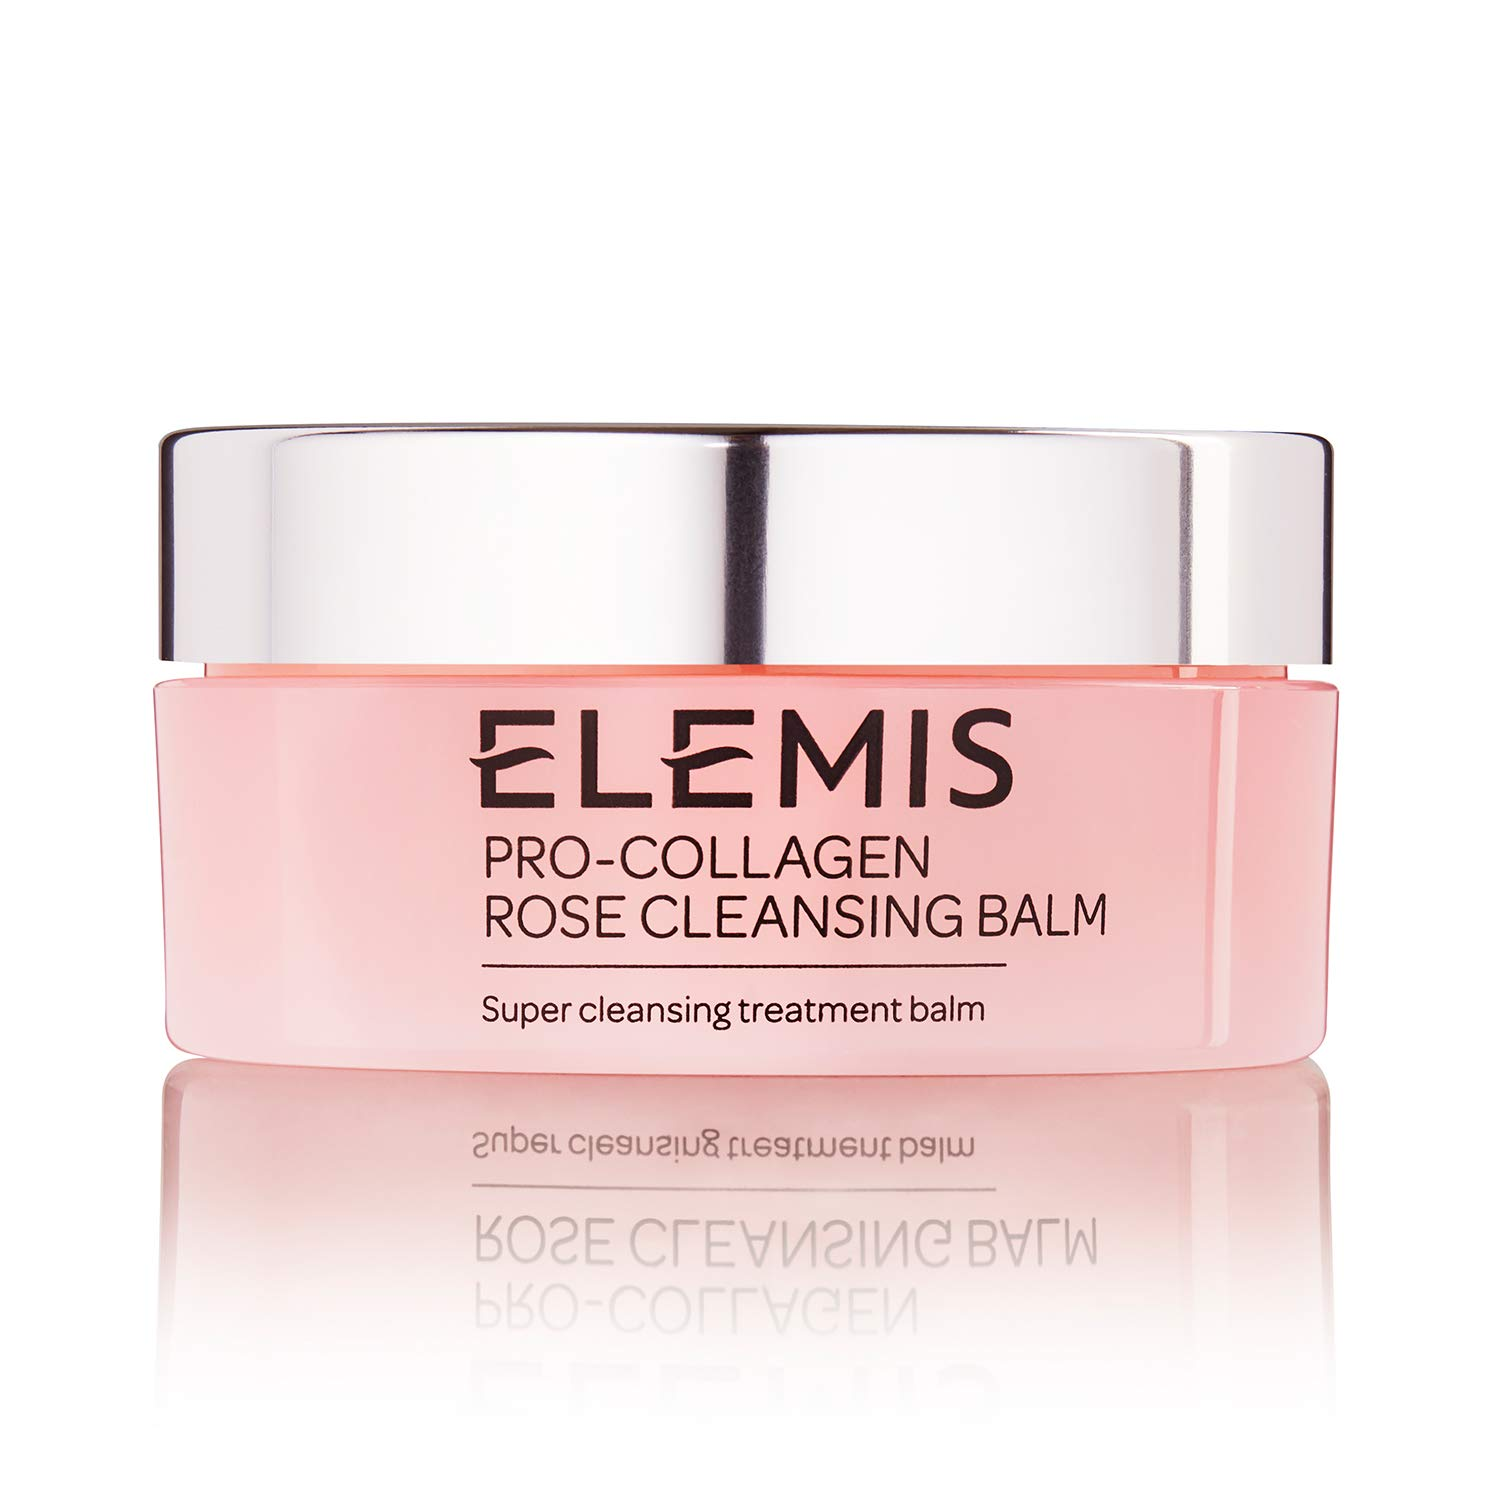 ELEMIS Pro-Collagen Rose Cleansing Balm, Soothing Cleansing Treatment Balm, 105 grams